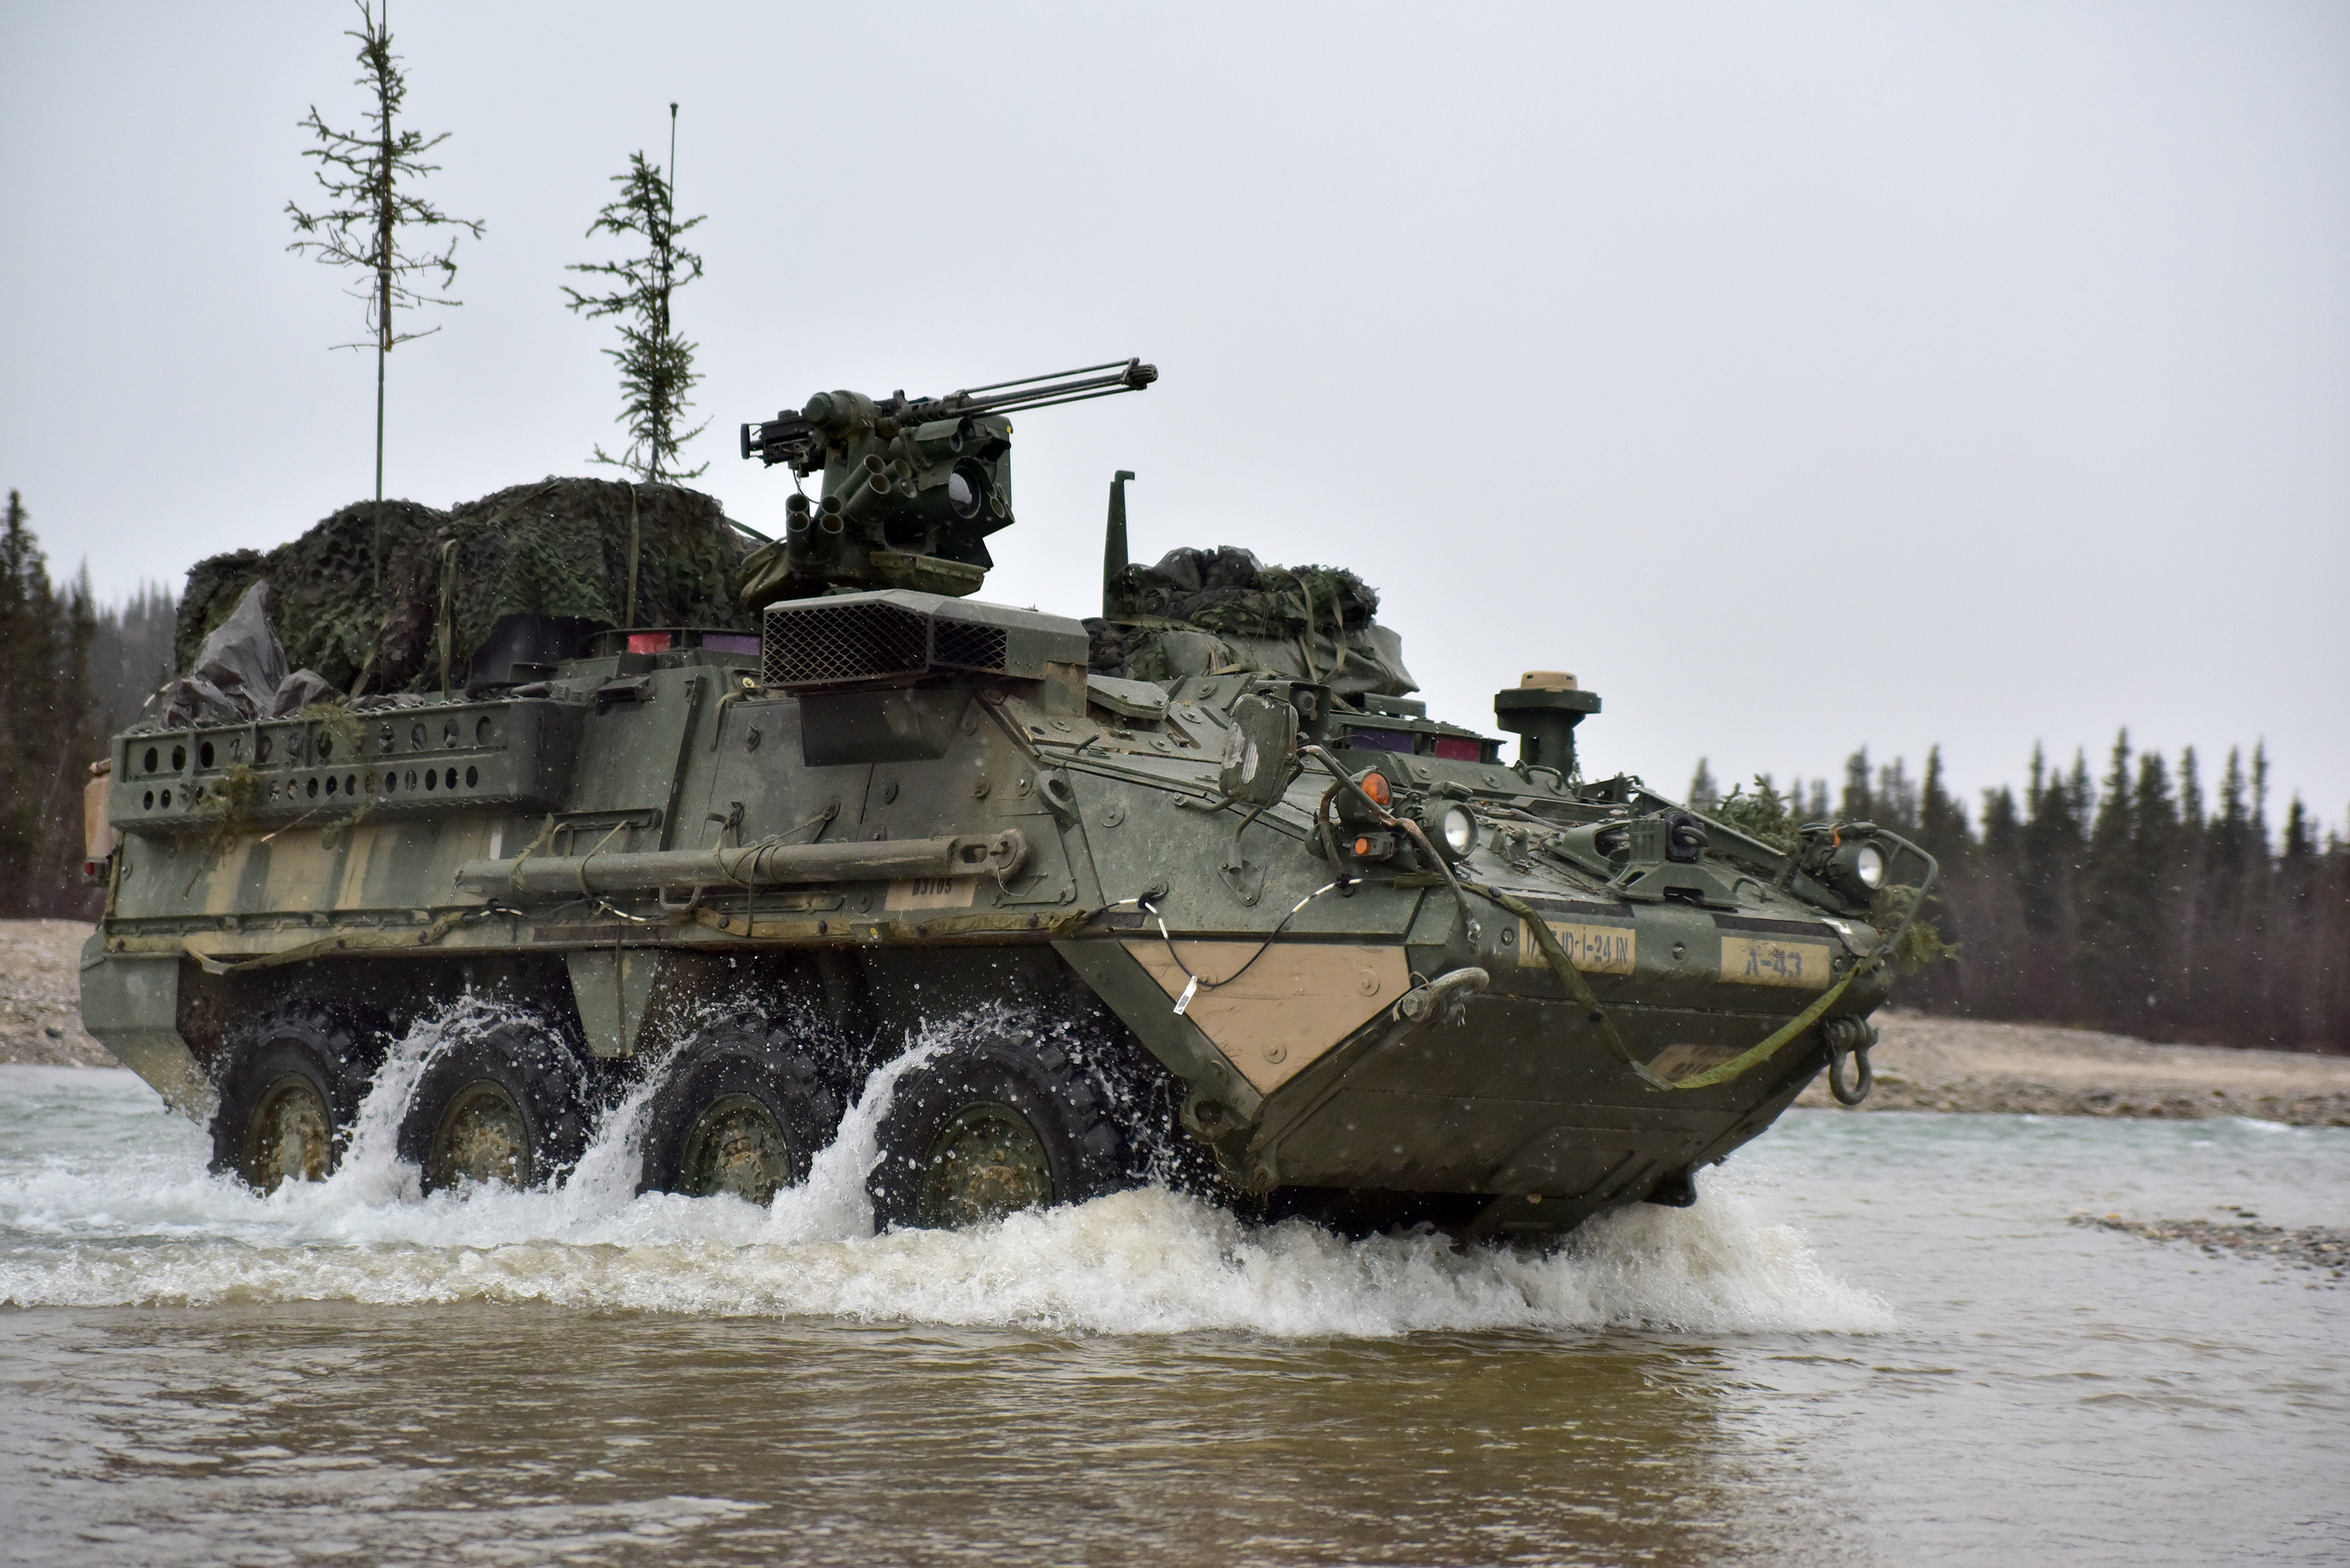 1st Stryker Brigade Combat Team, 25th Infantry Division cross Jarvis Creek in the Donnelly Training Area Oct. 19, 2018, during Arctic Anvil 19-01.